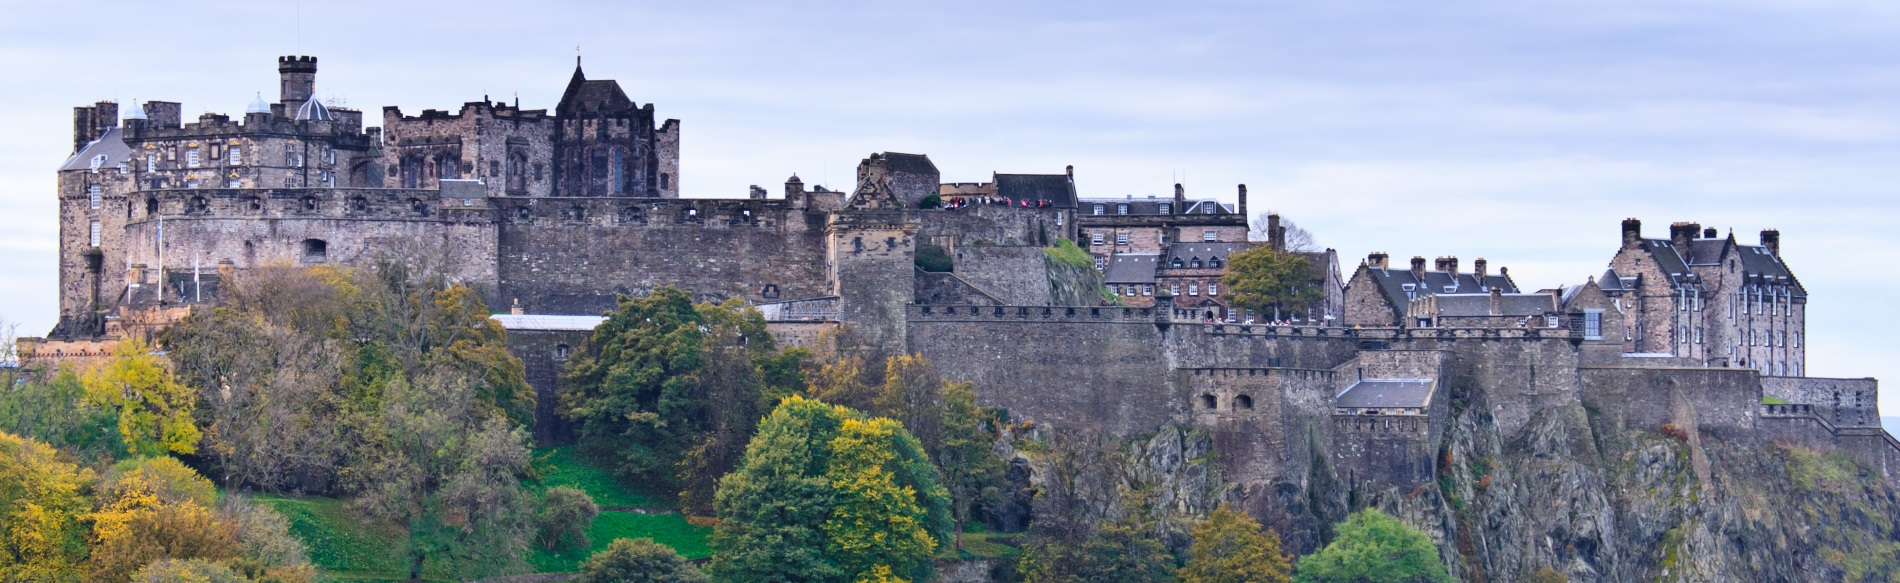 Edinburgh-castle-header